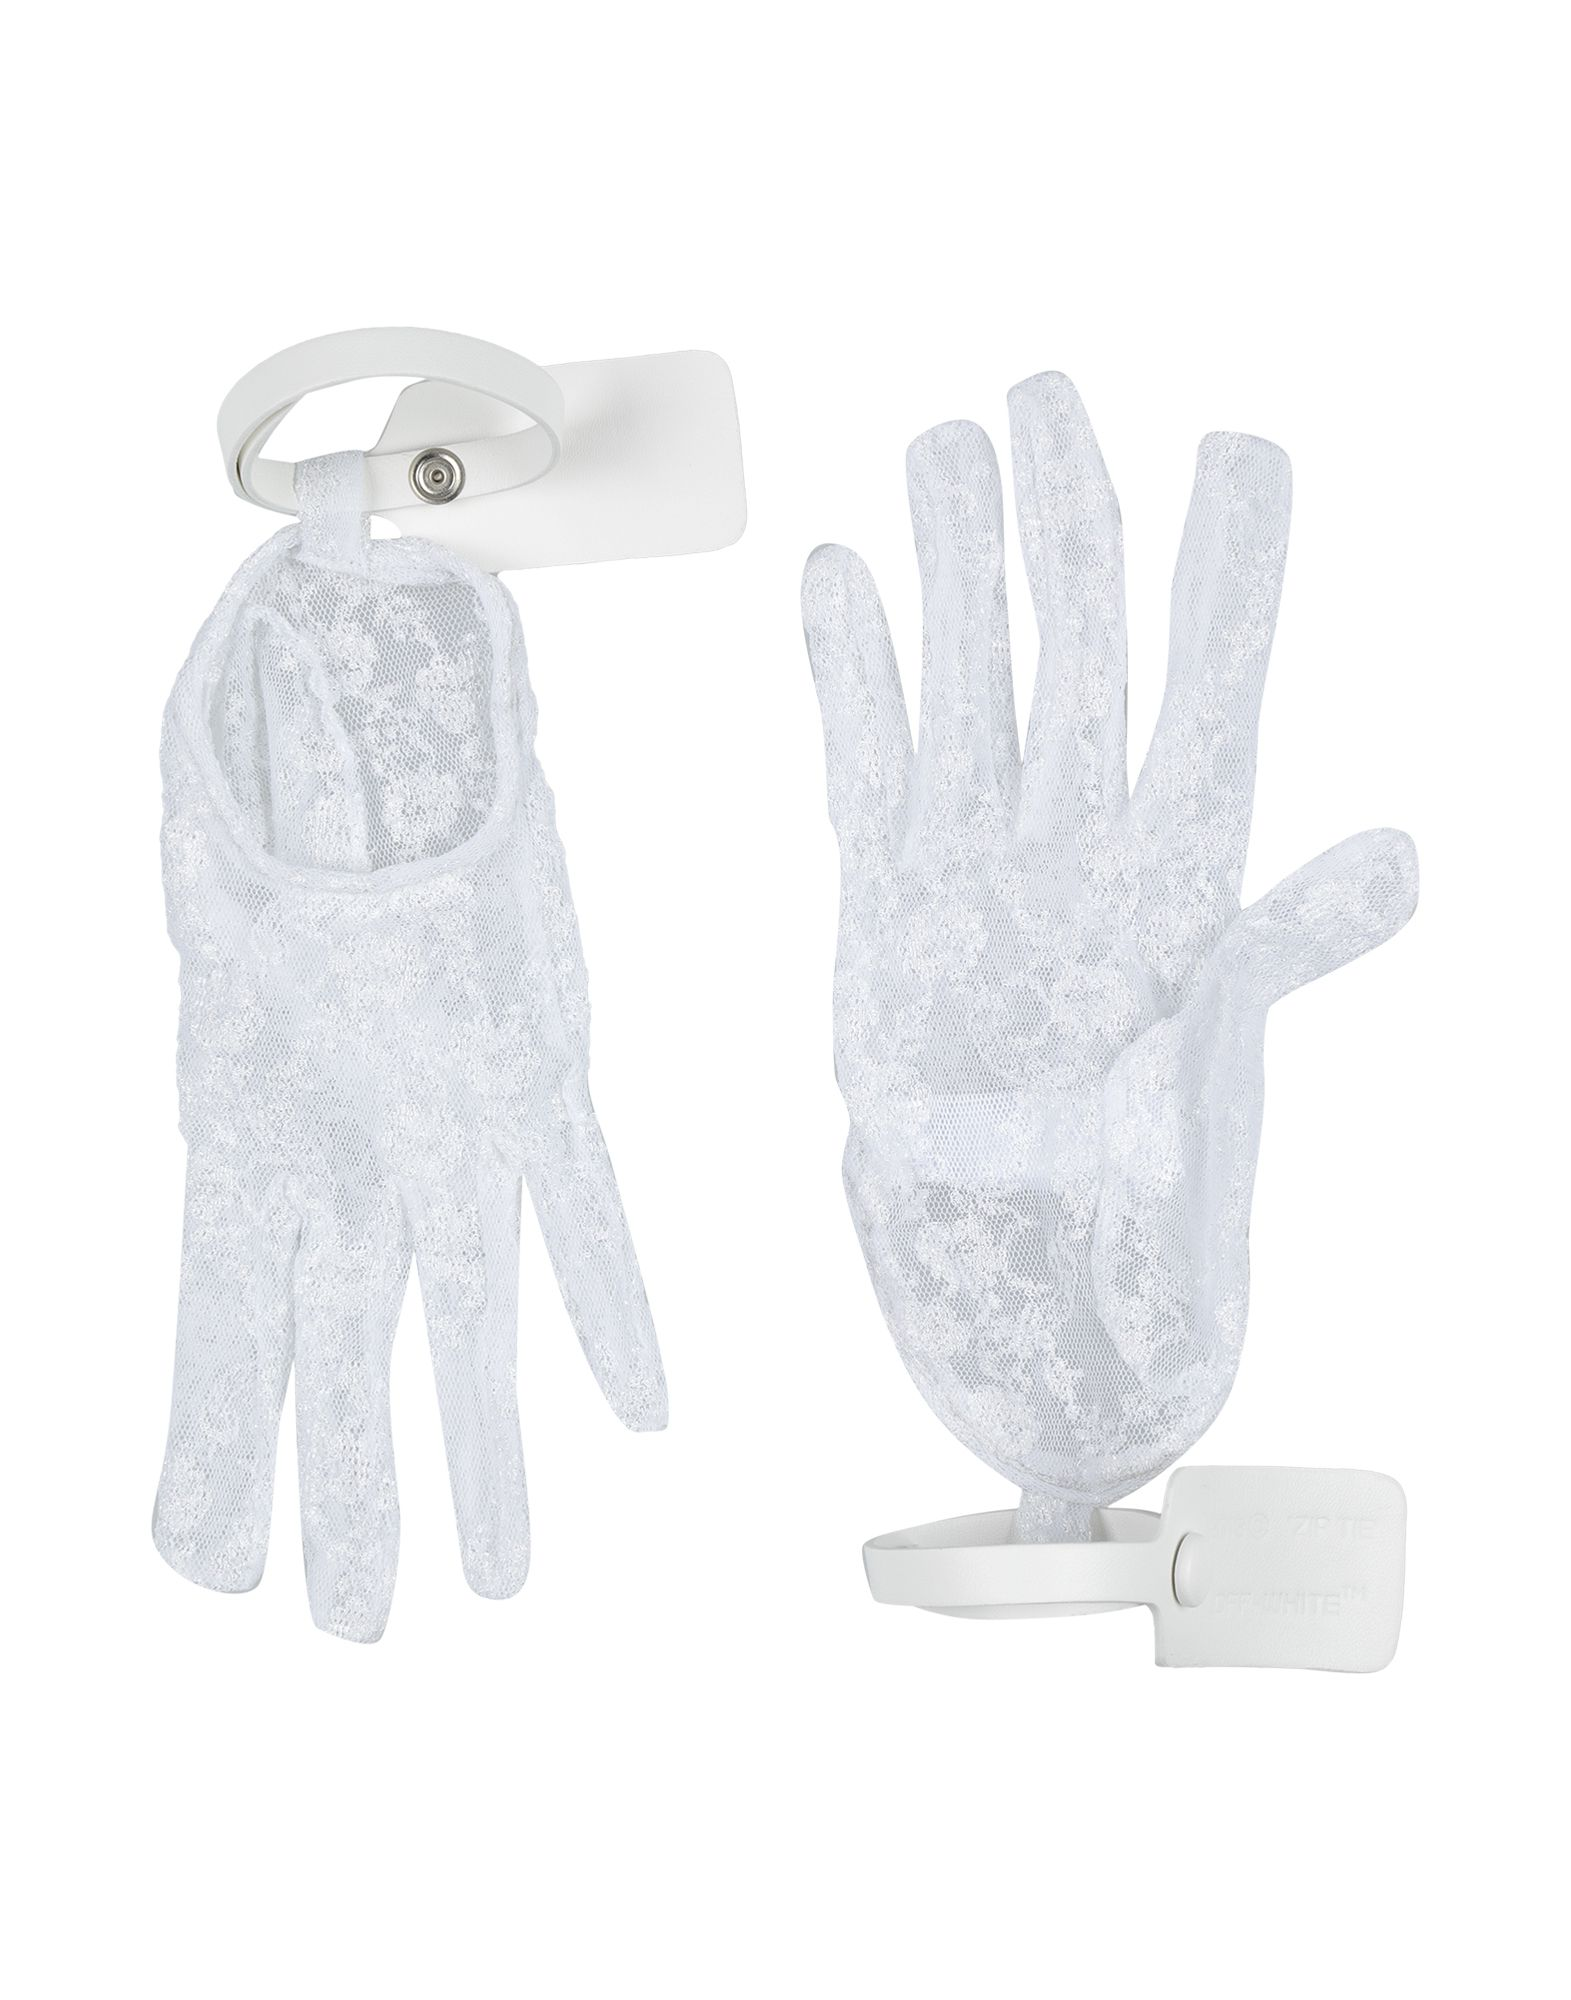 OFF-WHITE™ Gloves. leather, lace, no appliqués, solid color, contains non-textile parts of animal origin. 65% Viscose, 35% Polyamide, Soft Leather